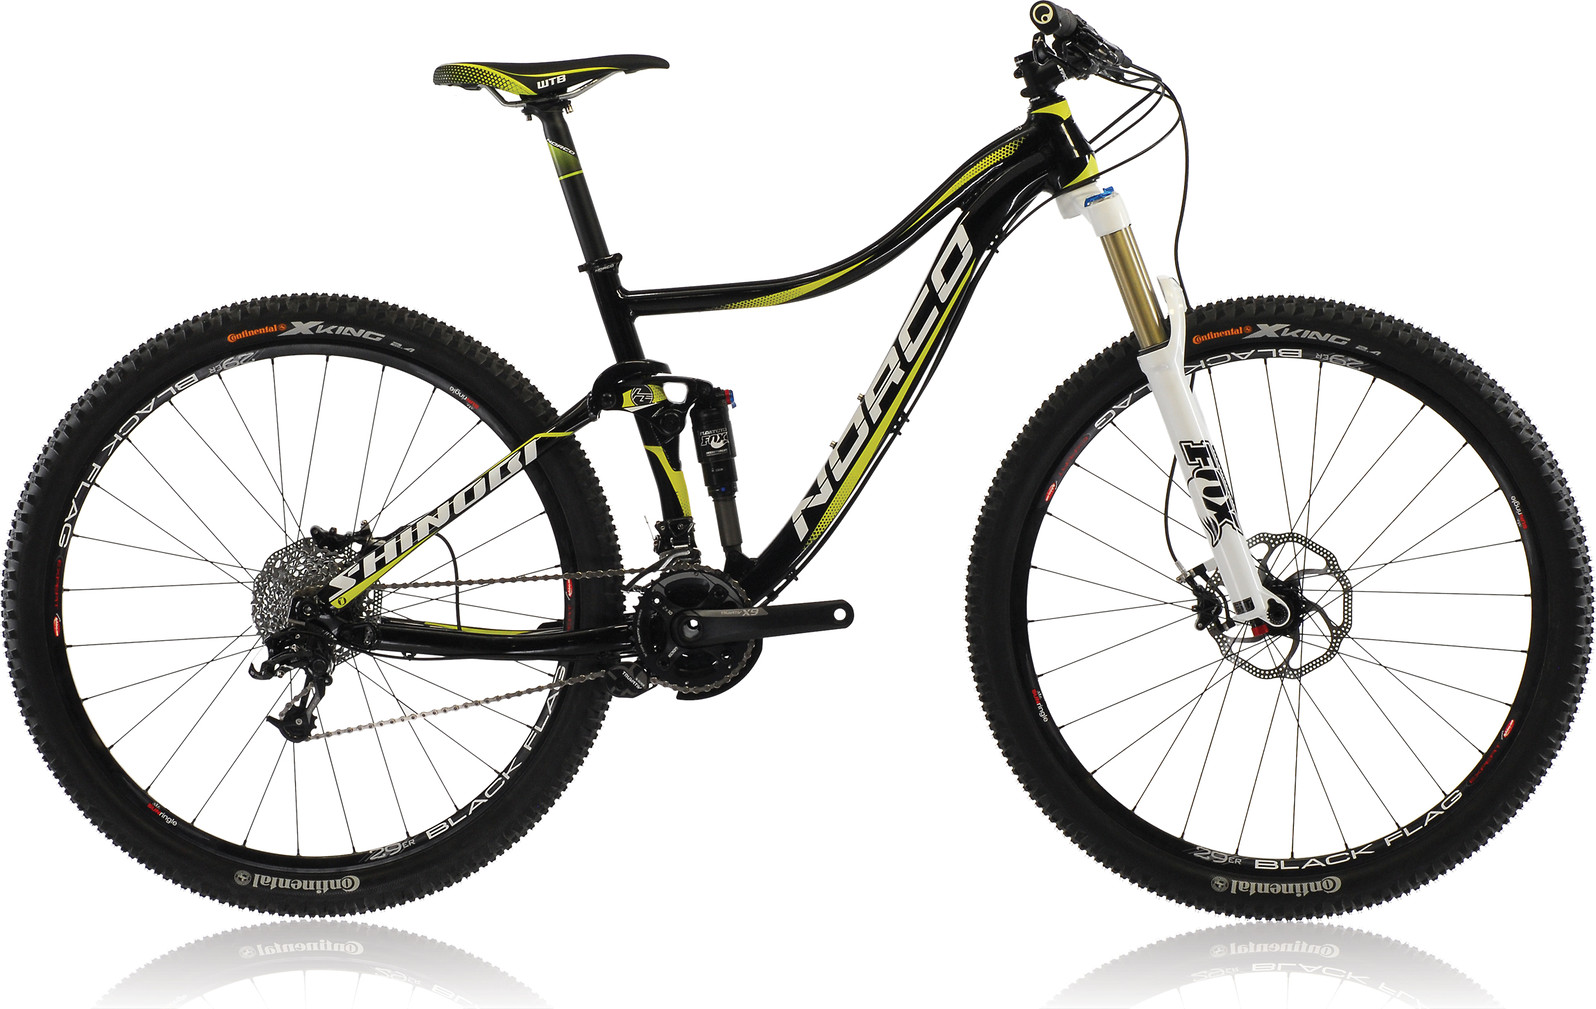 2013 Norco Shinobi 1 Bike shinobi-1-1